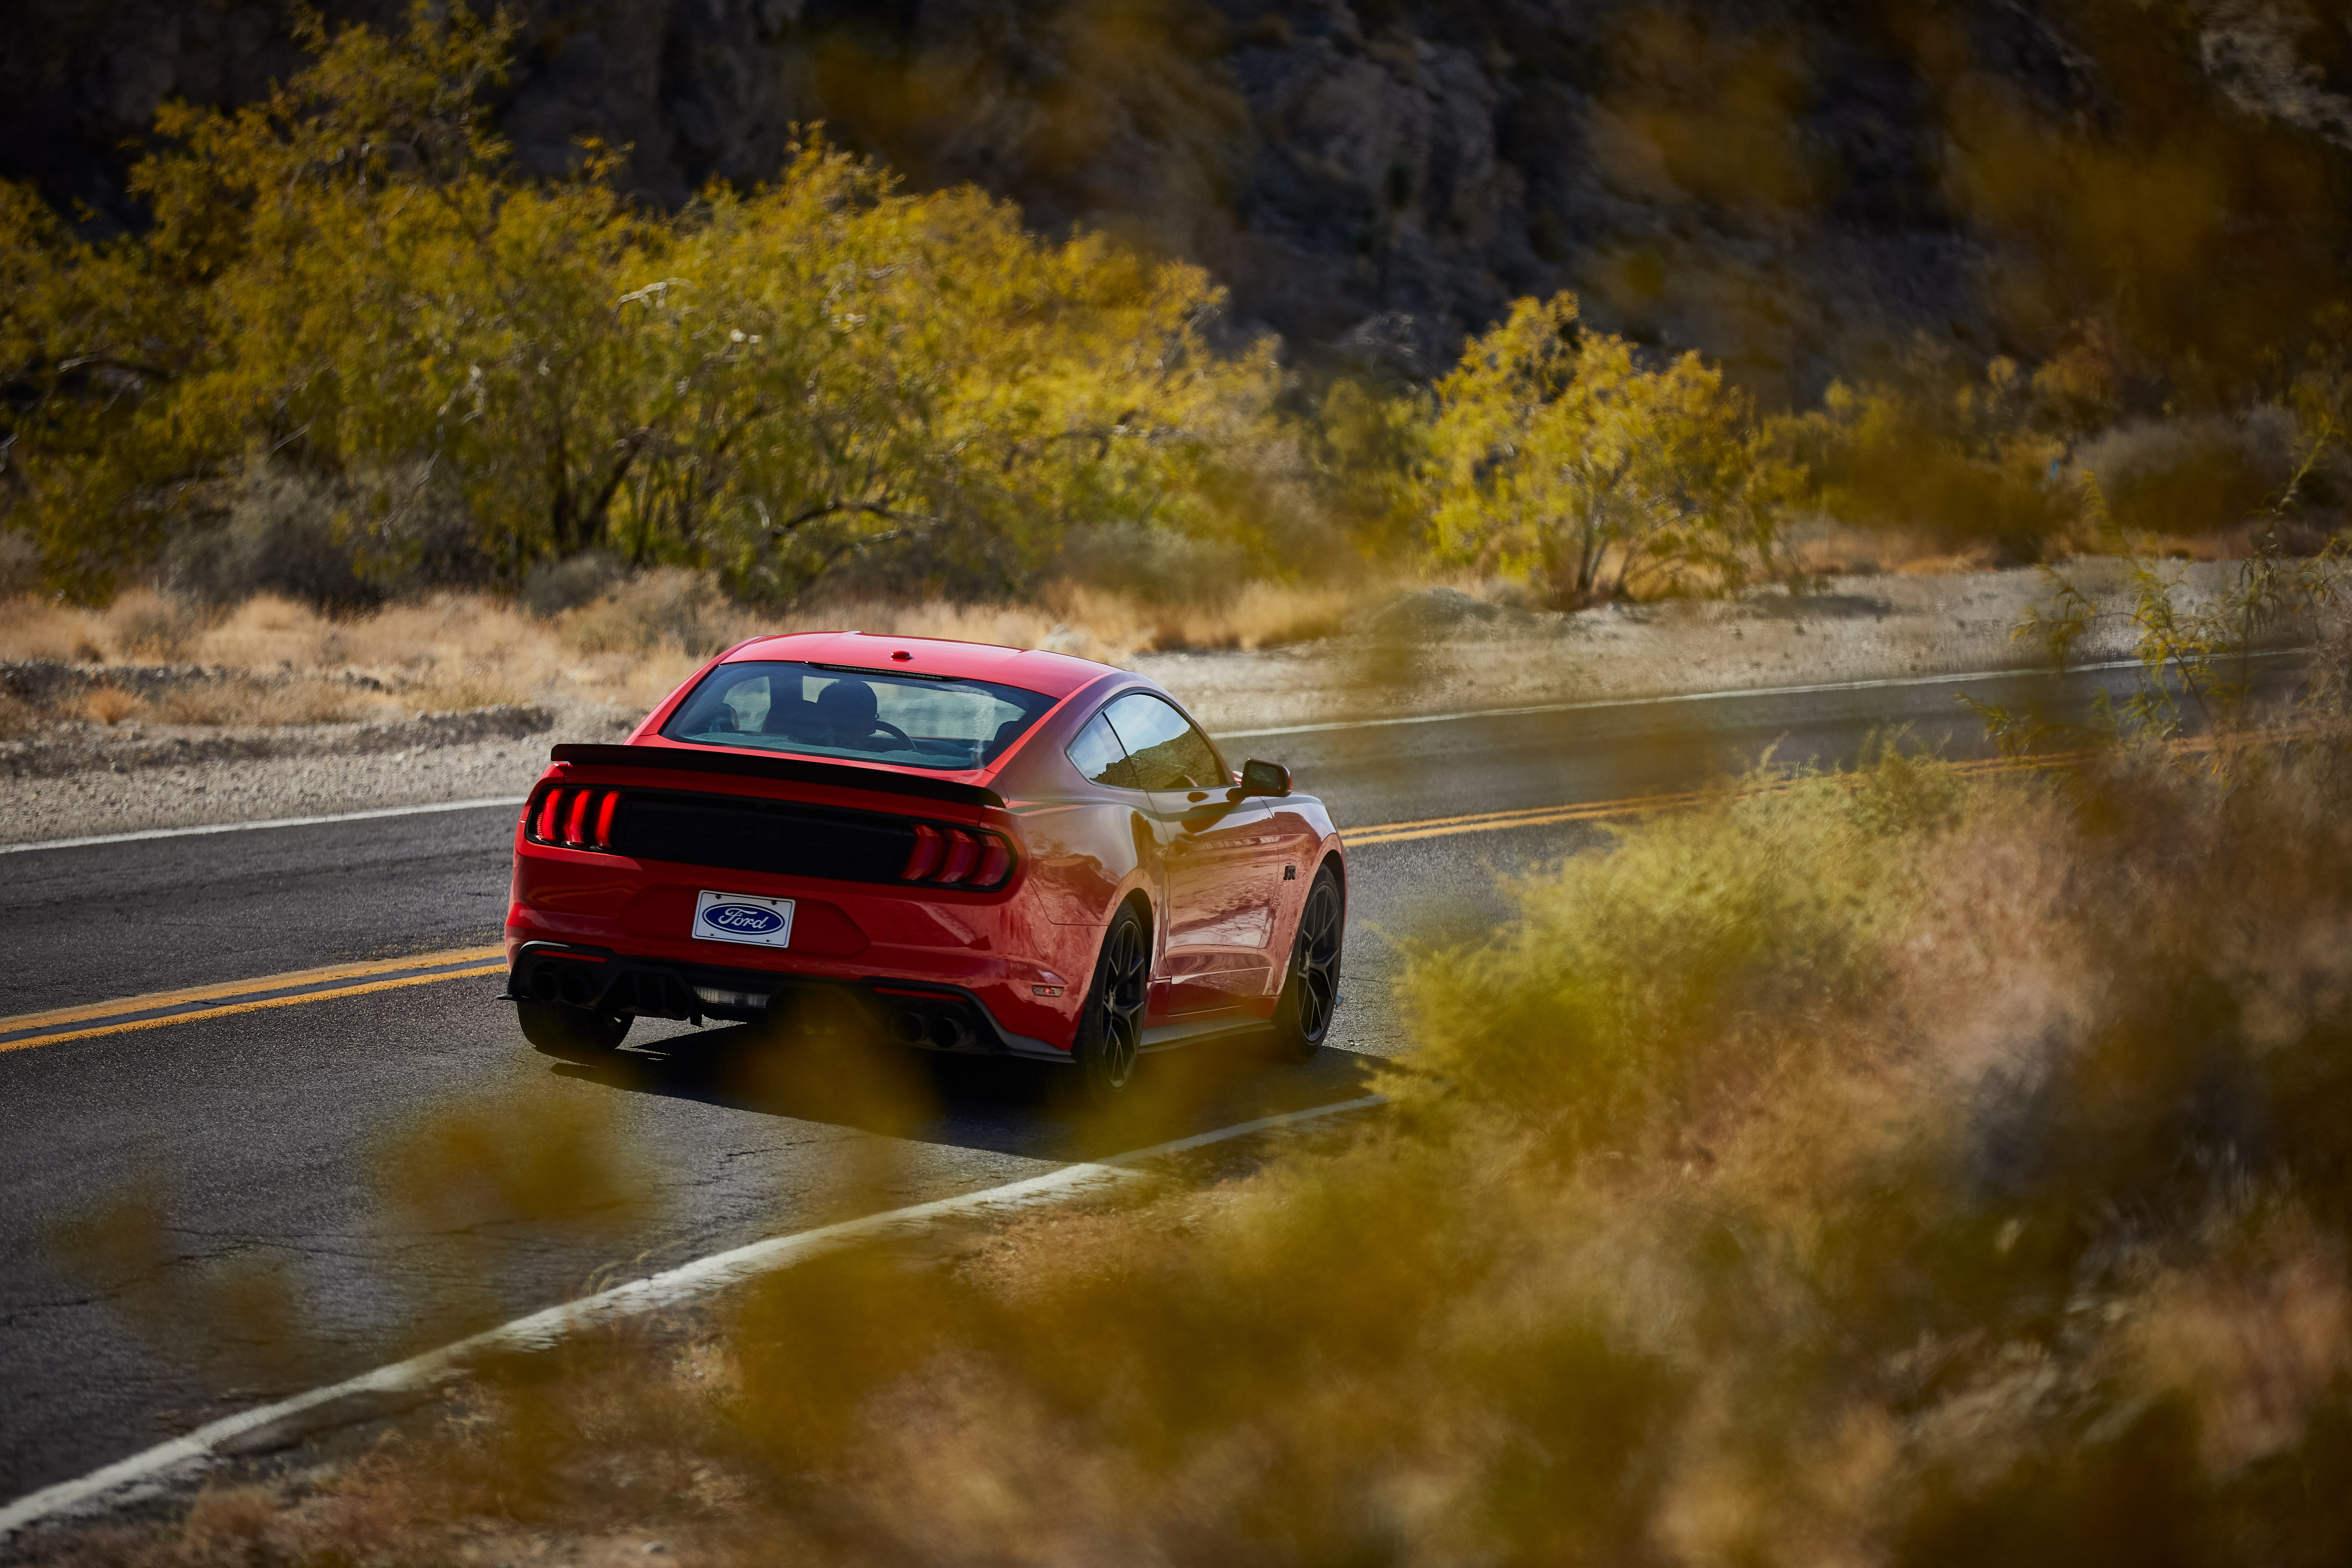 2019 Ford Mustang Series 1 RTR Rear Three-Quarter Wallpaper (5)